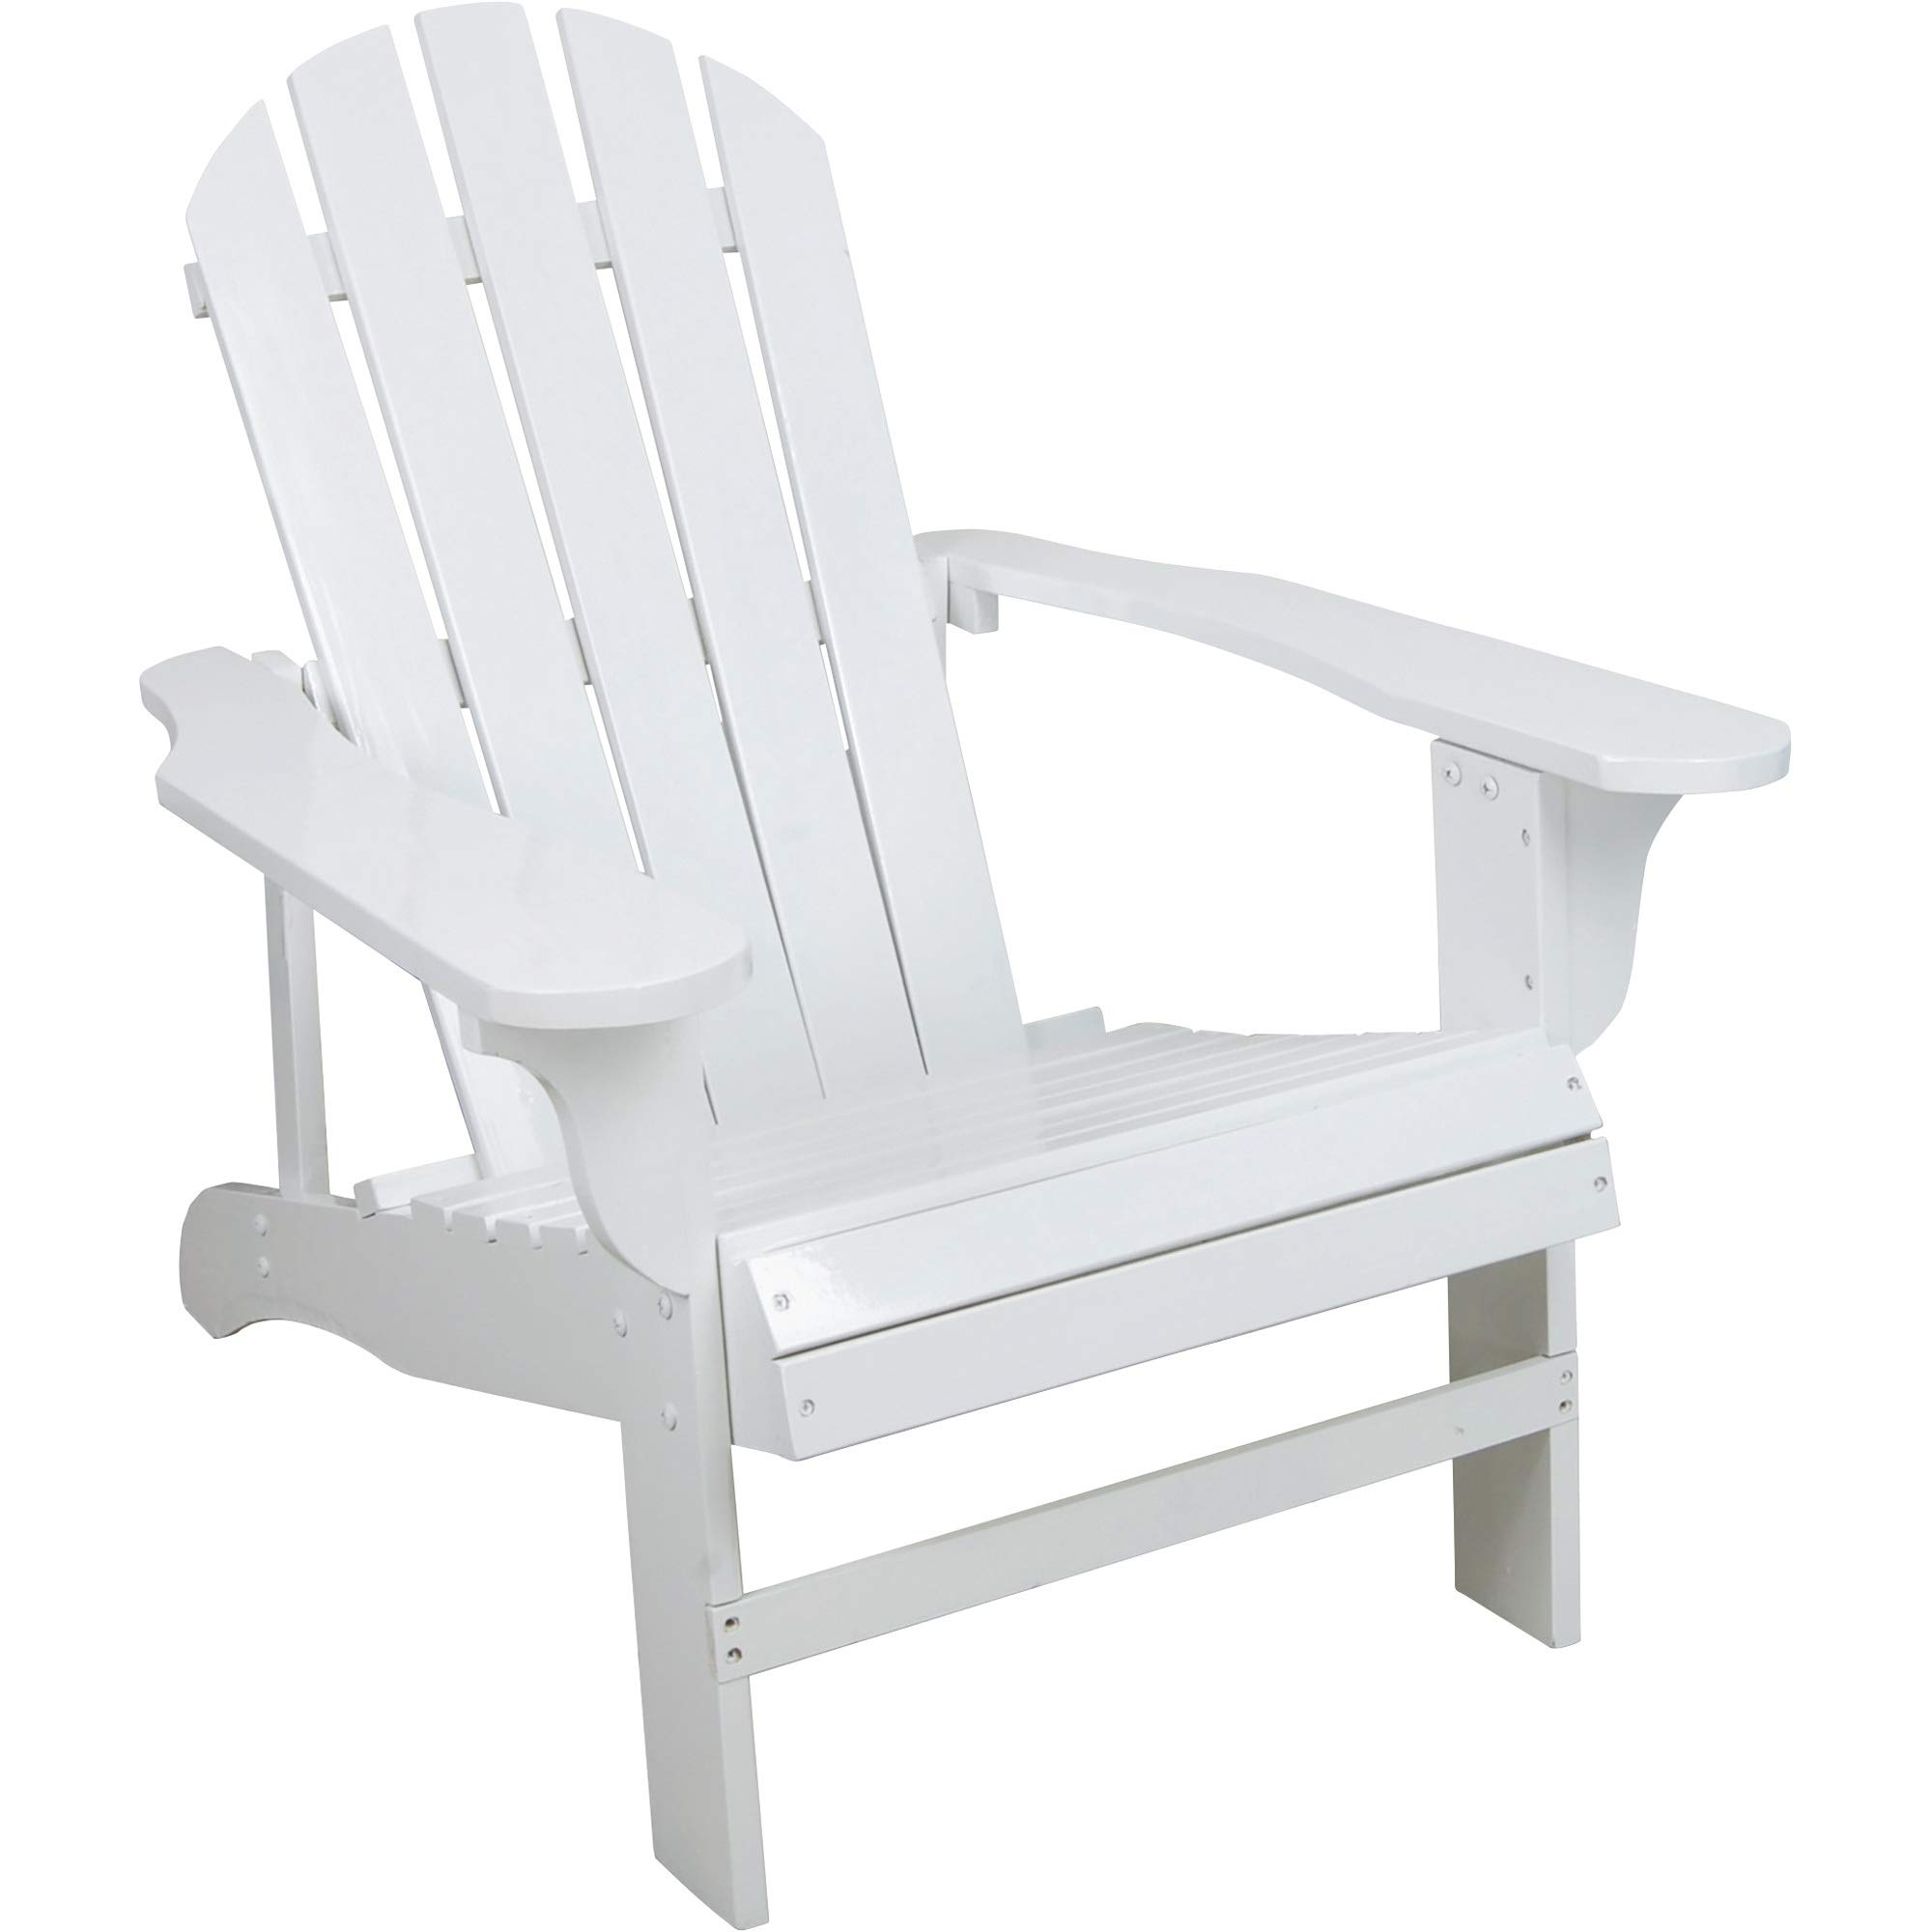 Leigh Country Classic White Painted Wood Adirondack Chair by Leigh Country